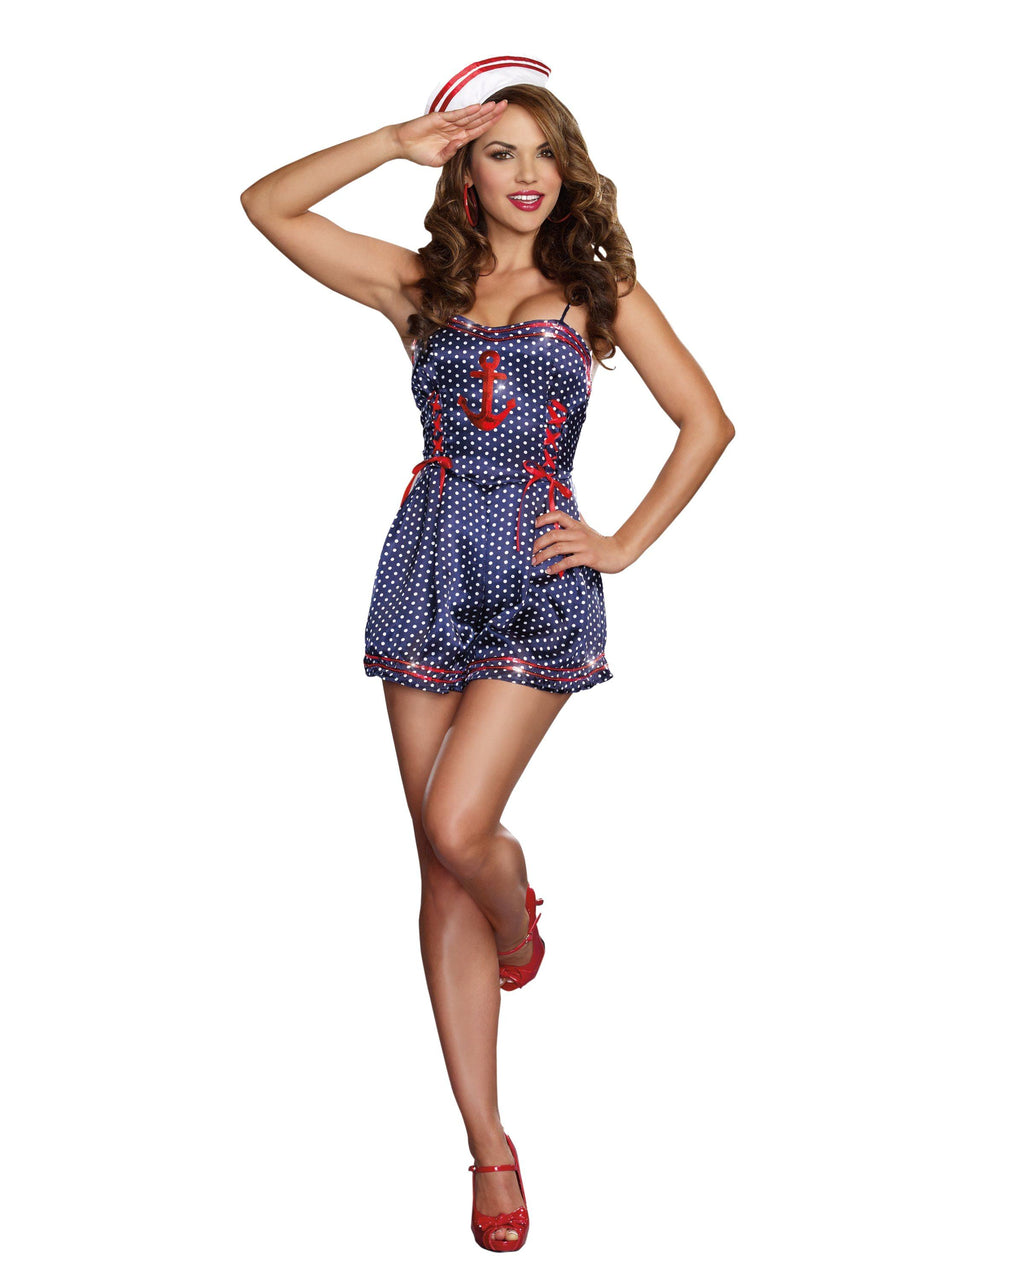 Just Cruisin' Women's Costume Dreamgirl Costume